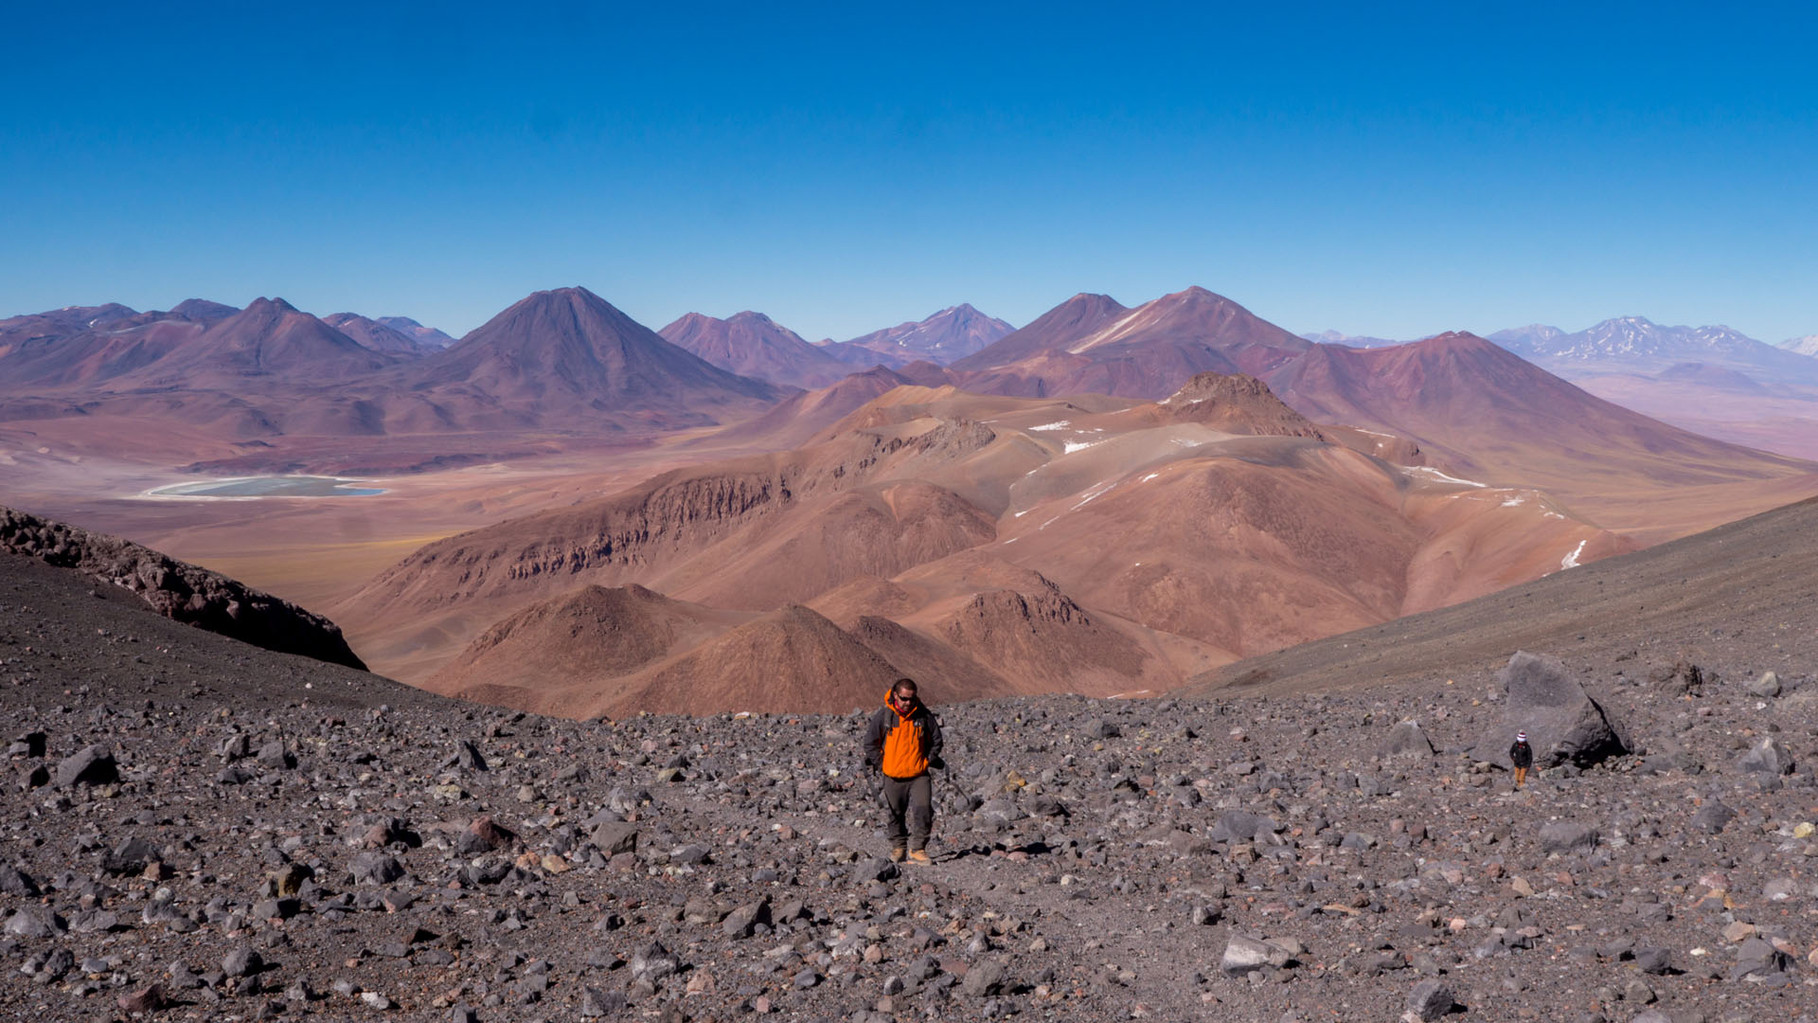 Ascending activ volcano Lascar (5600masl), Andes and Laguna Lejio in the background, near San Pedro de Atacama, Chile